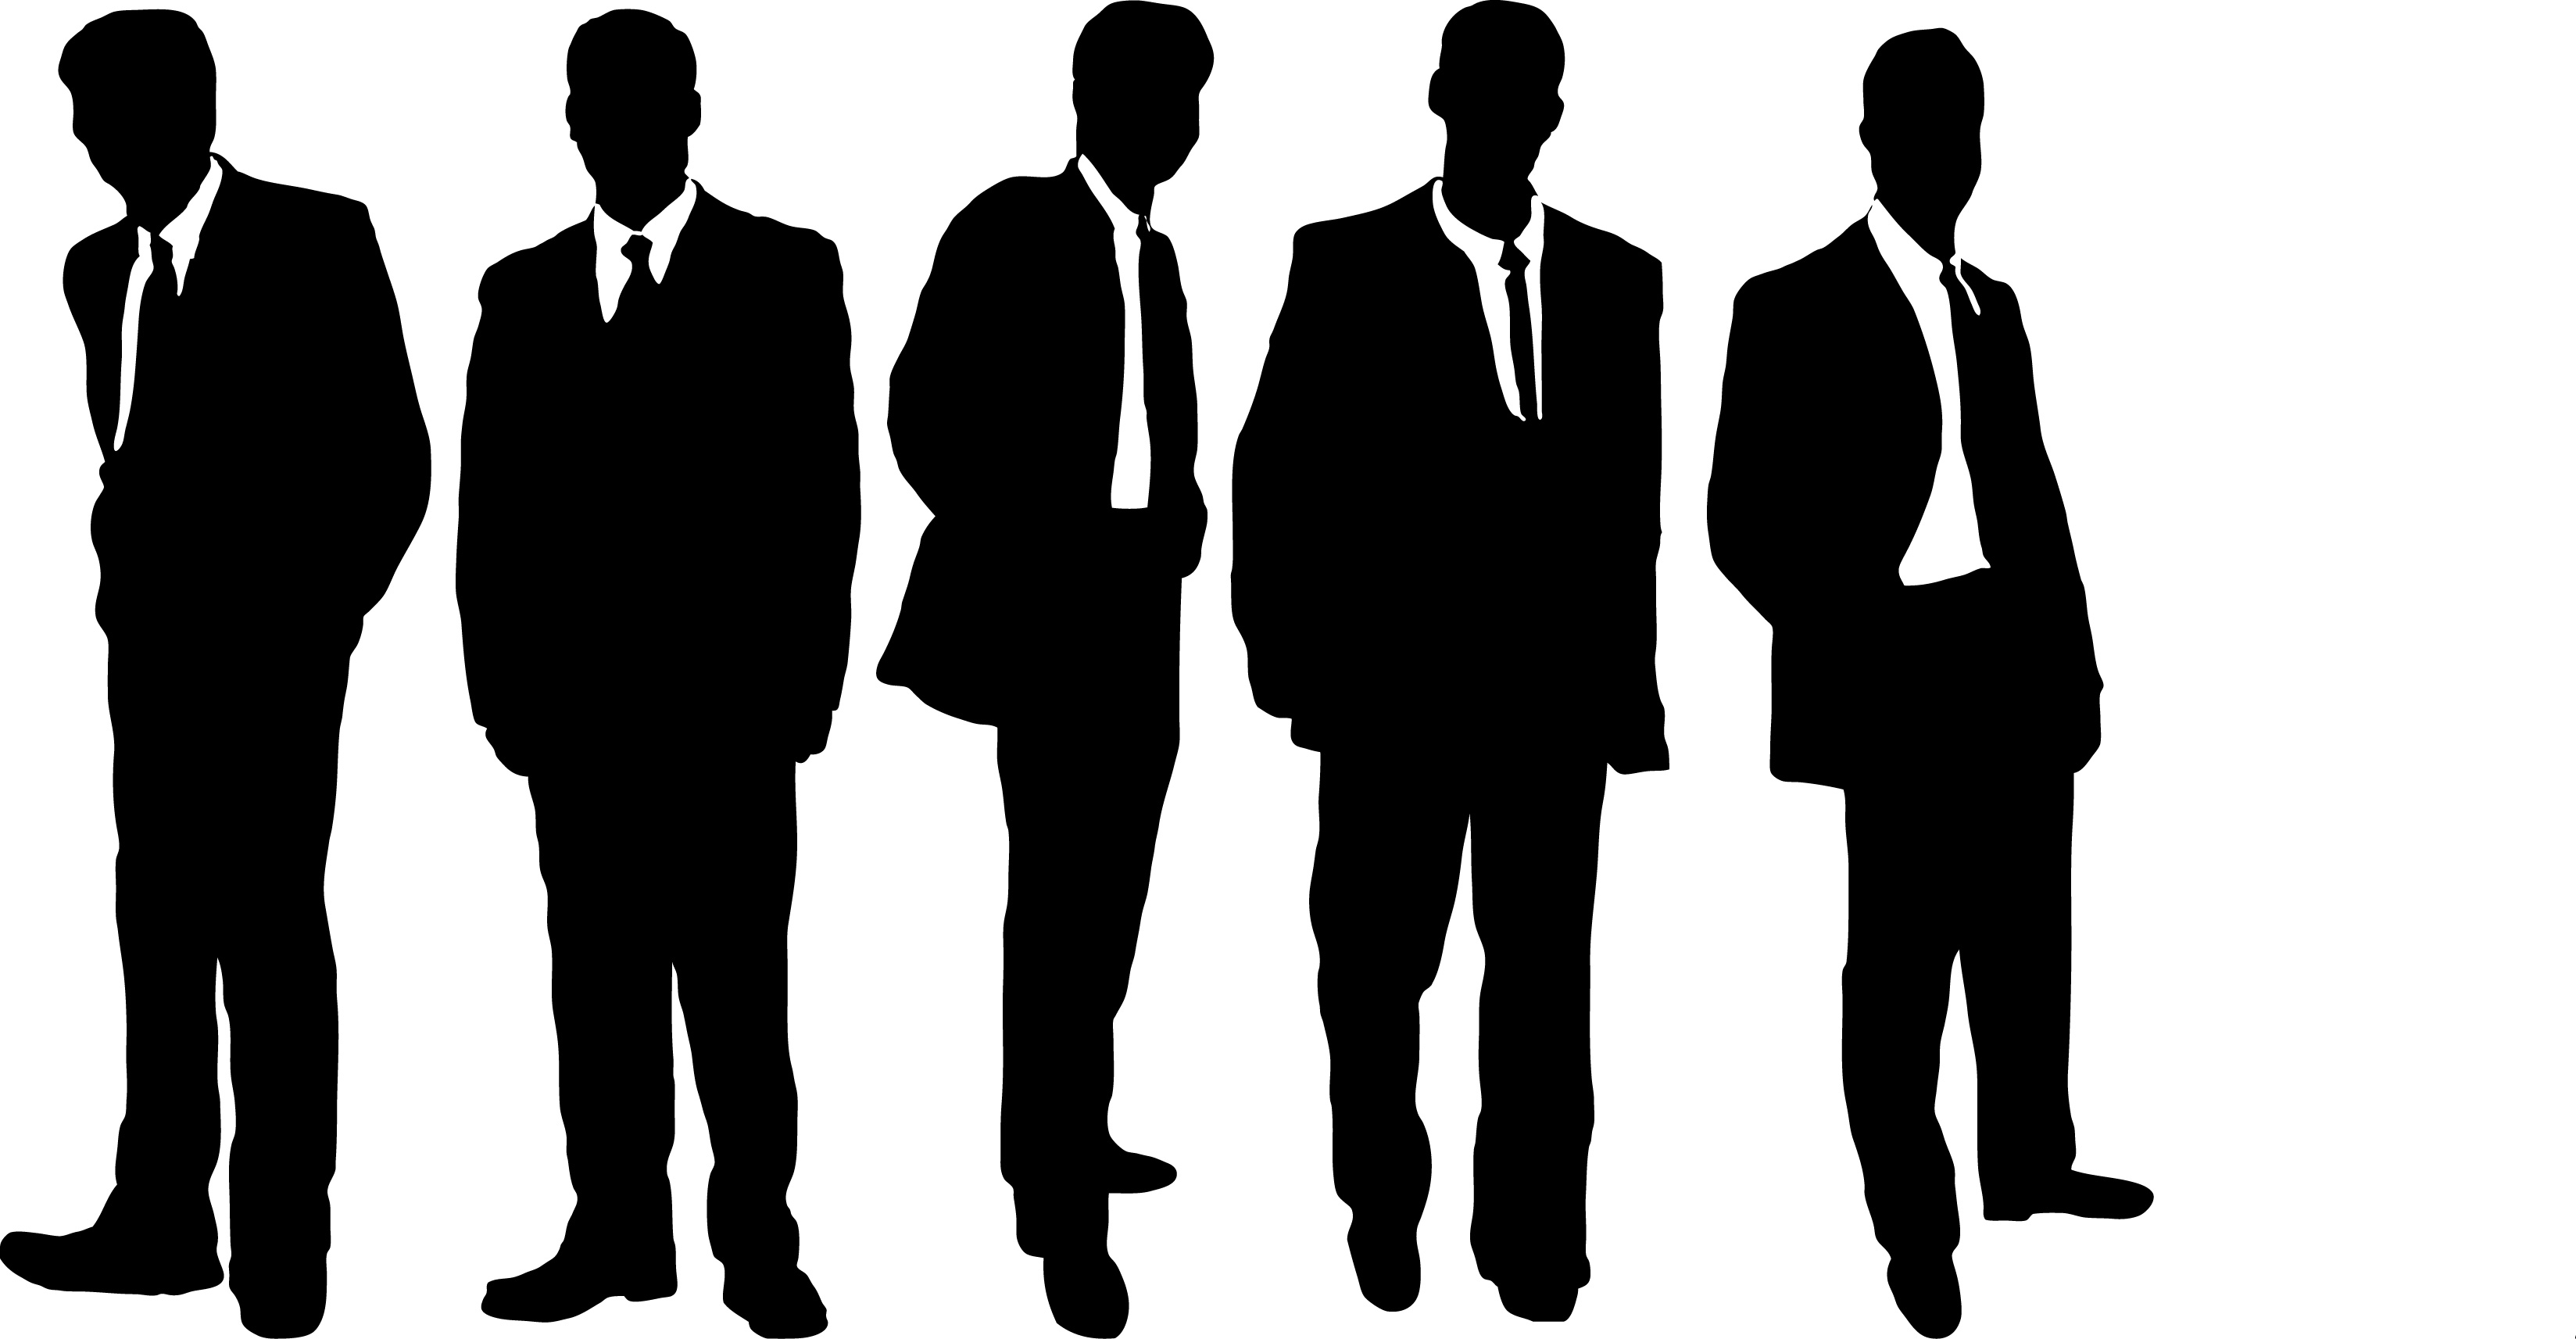 Shaow clipart business person Men Clip Art People Library